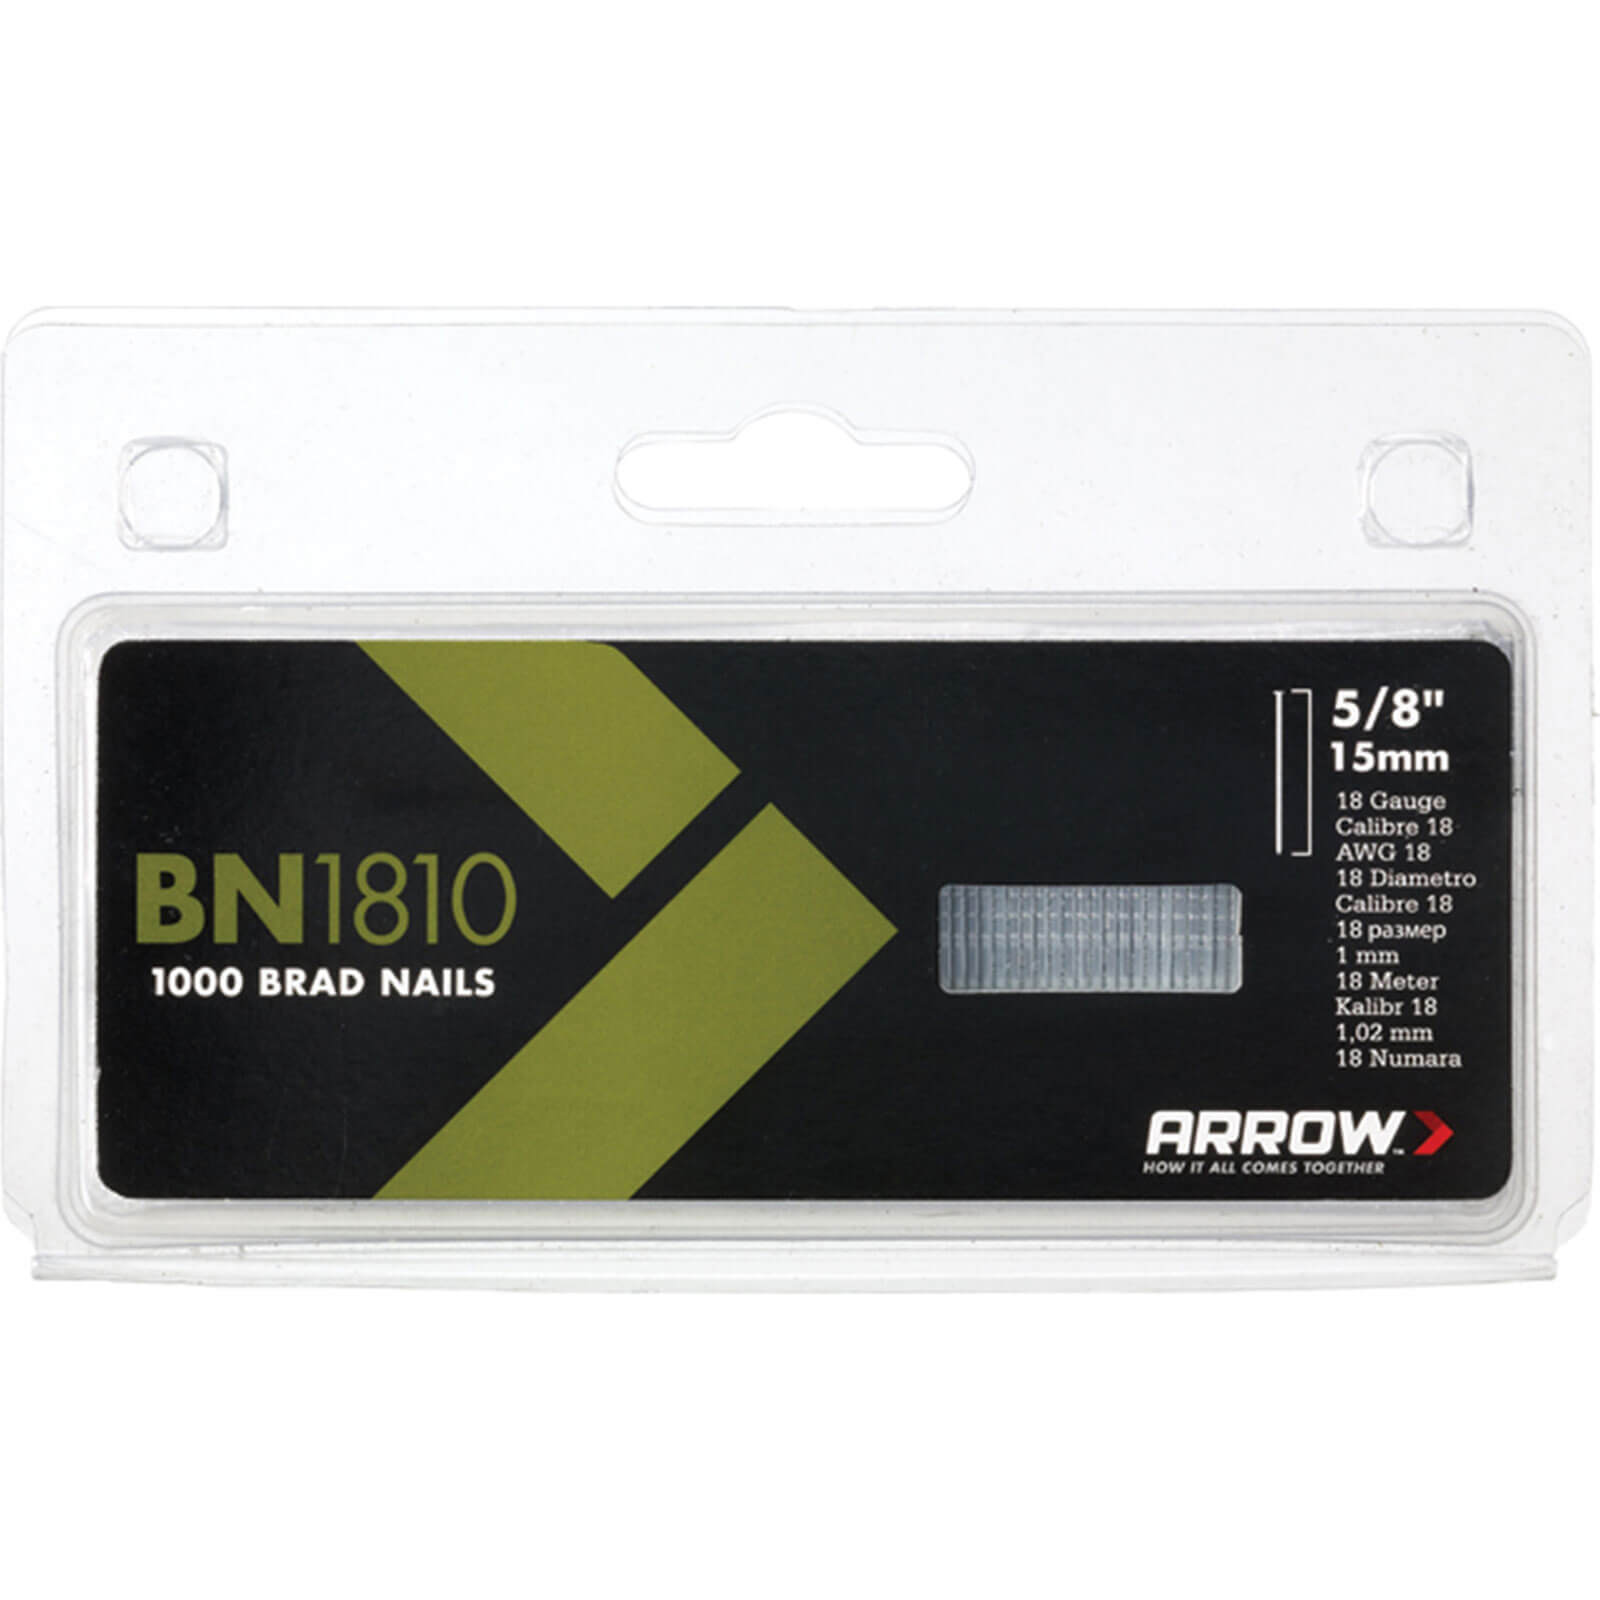 Arrow Bn1810 Brad Nails (Box Of 500)